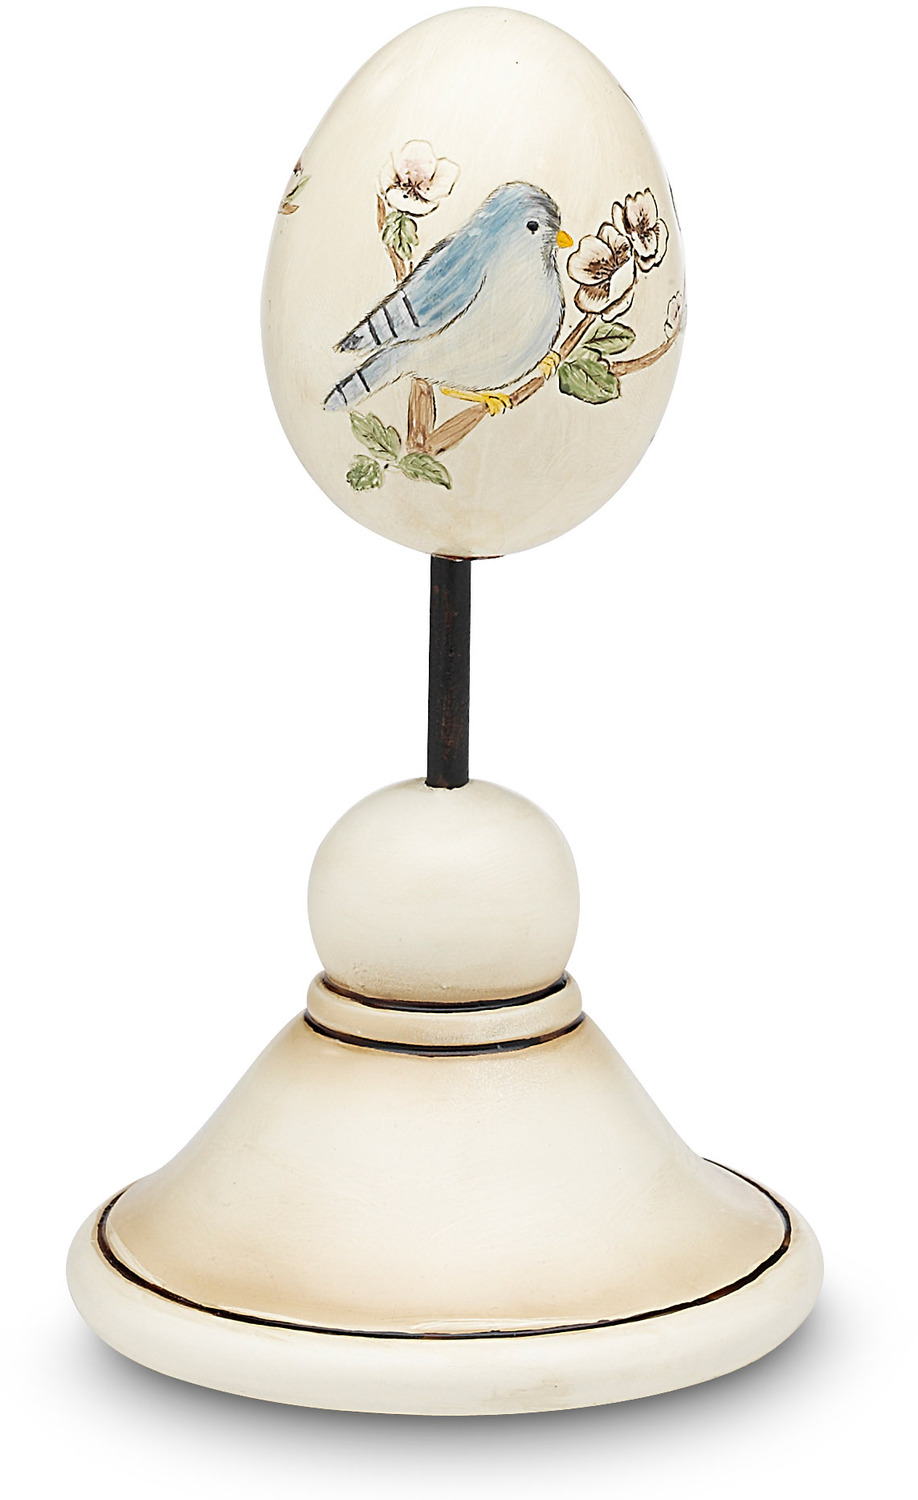 "Decorative Egg Finial by We Love - Decorative Egg Finial - 6.25"" Egg Finial"